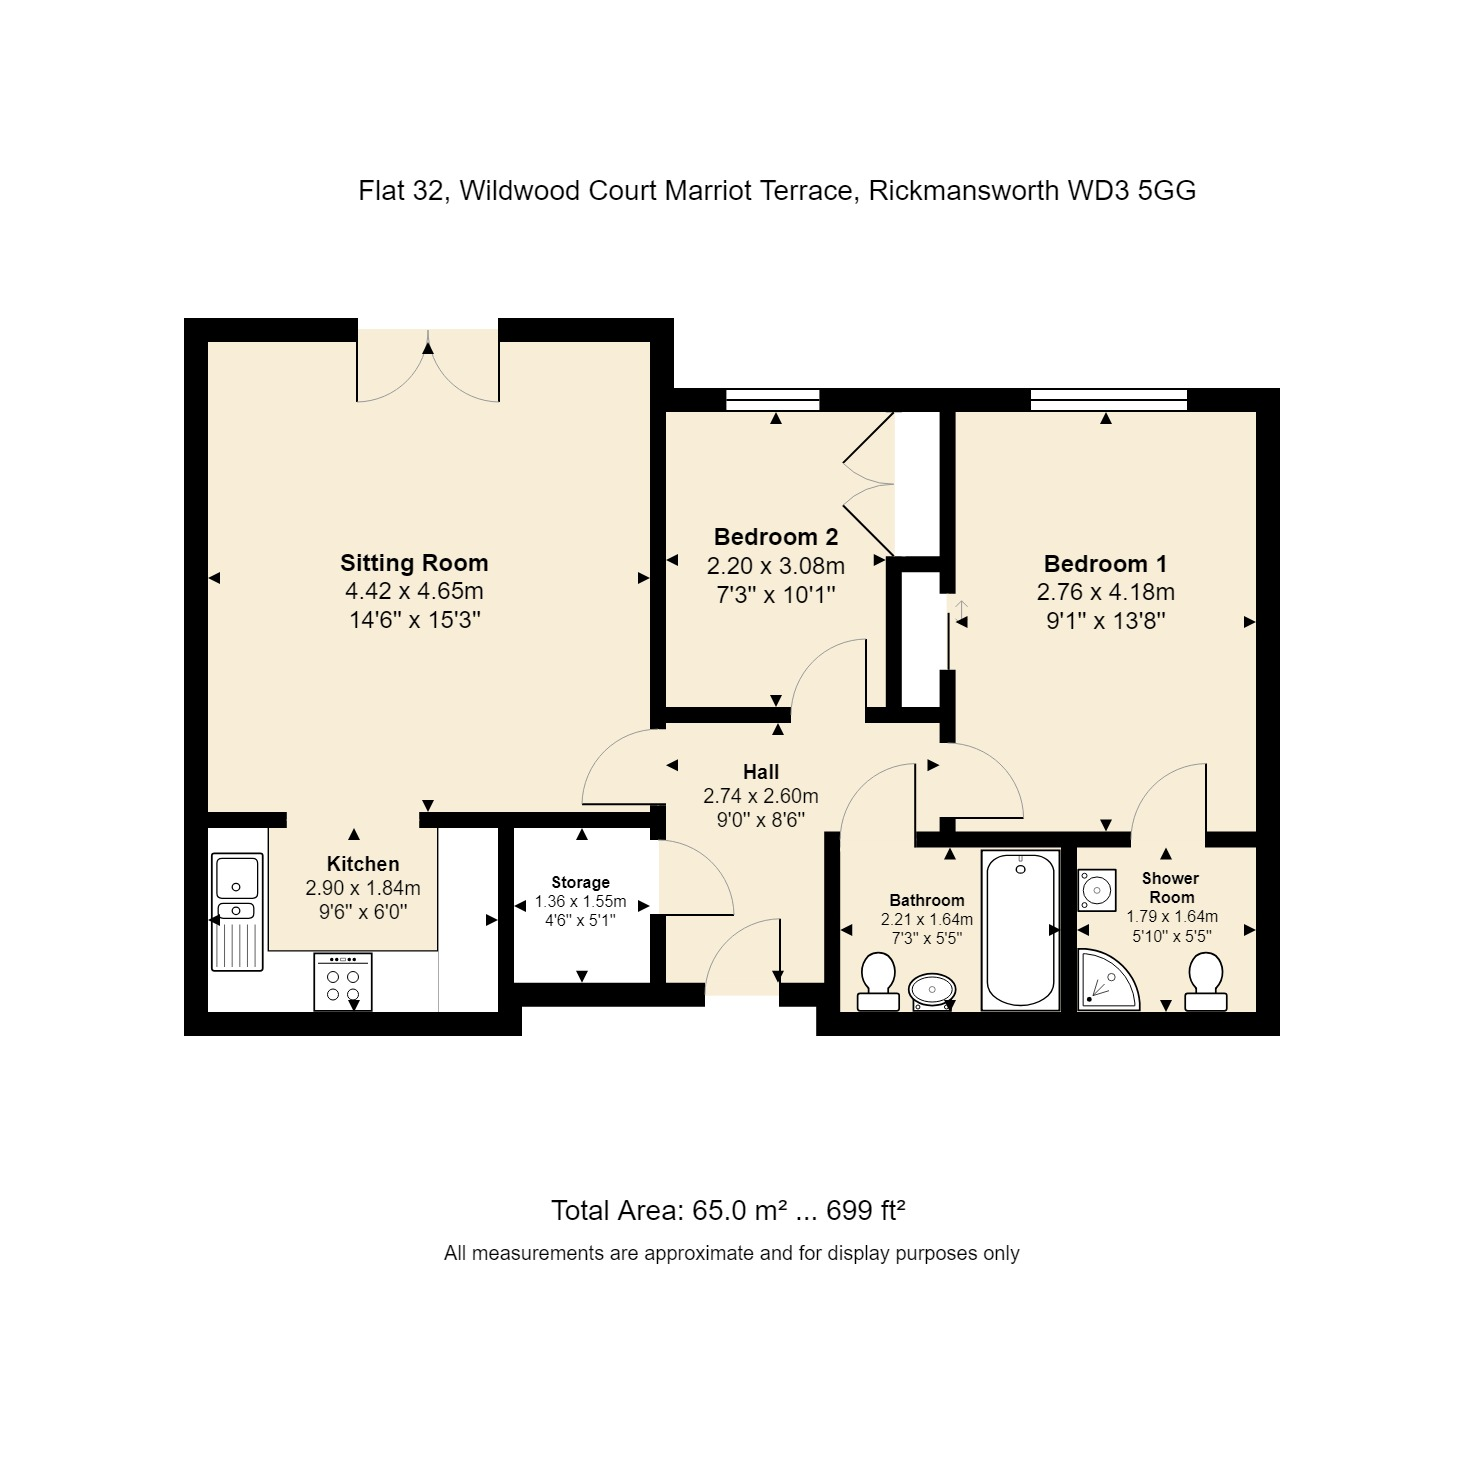 32 Wildwood Court Floorplan